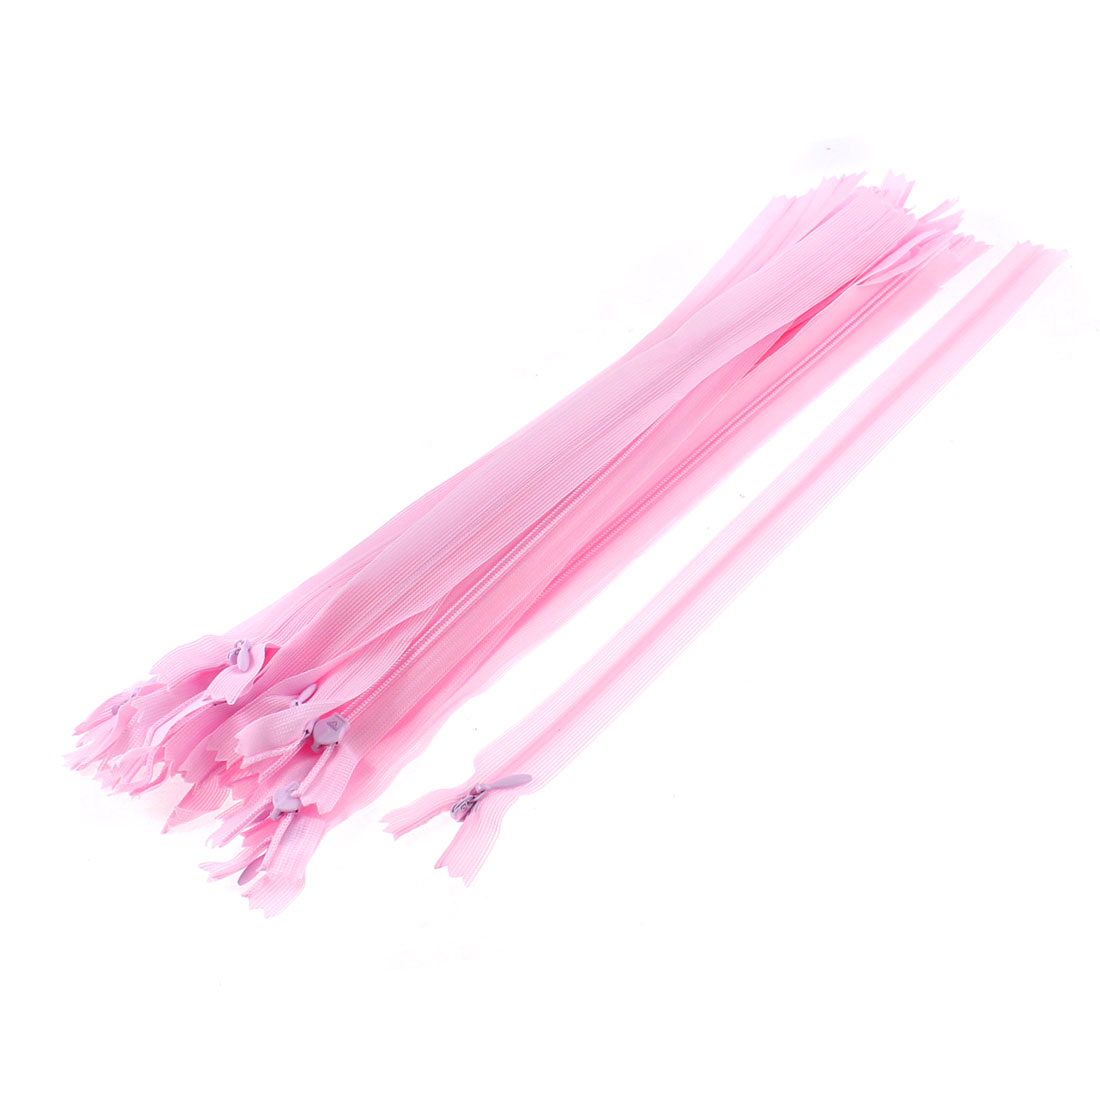 20 Pcs 12-inch Long Pink Nylon Zippers Zips for Clothing